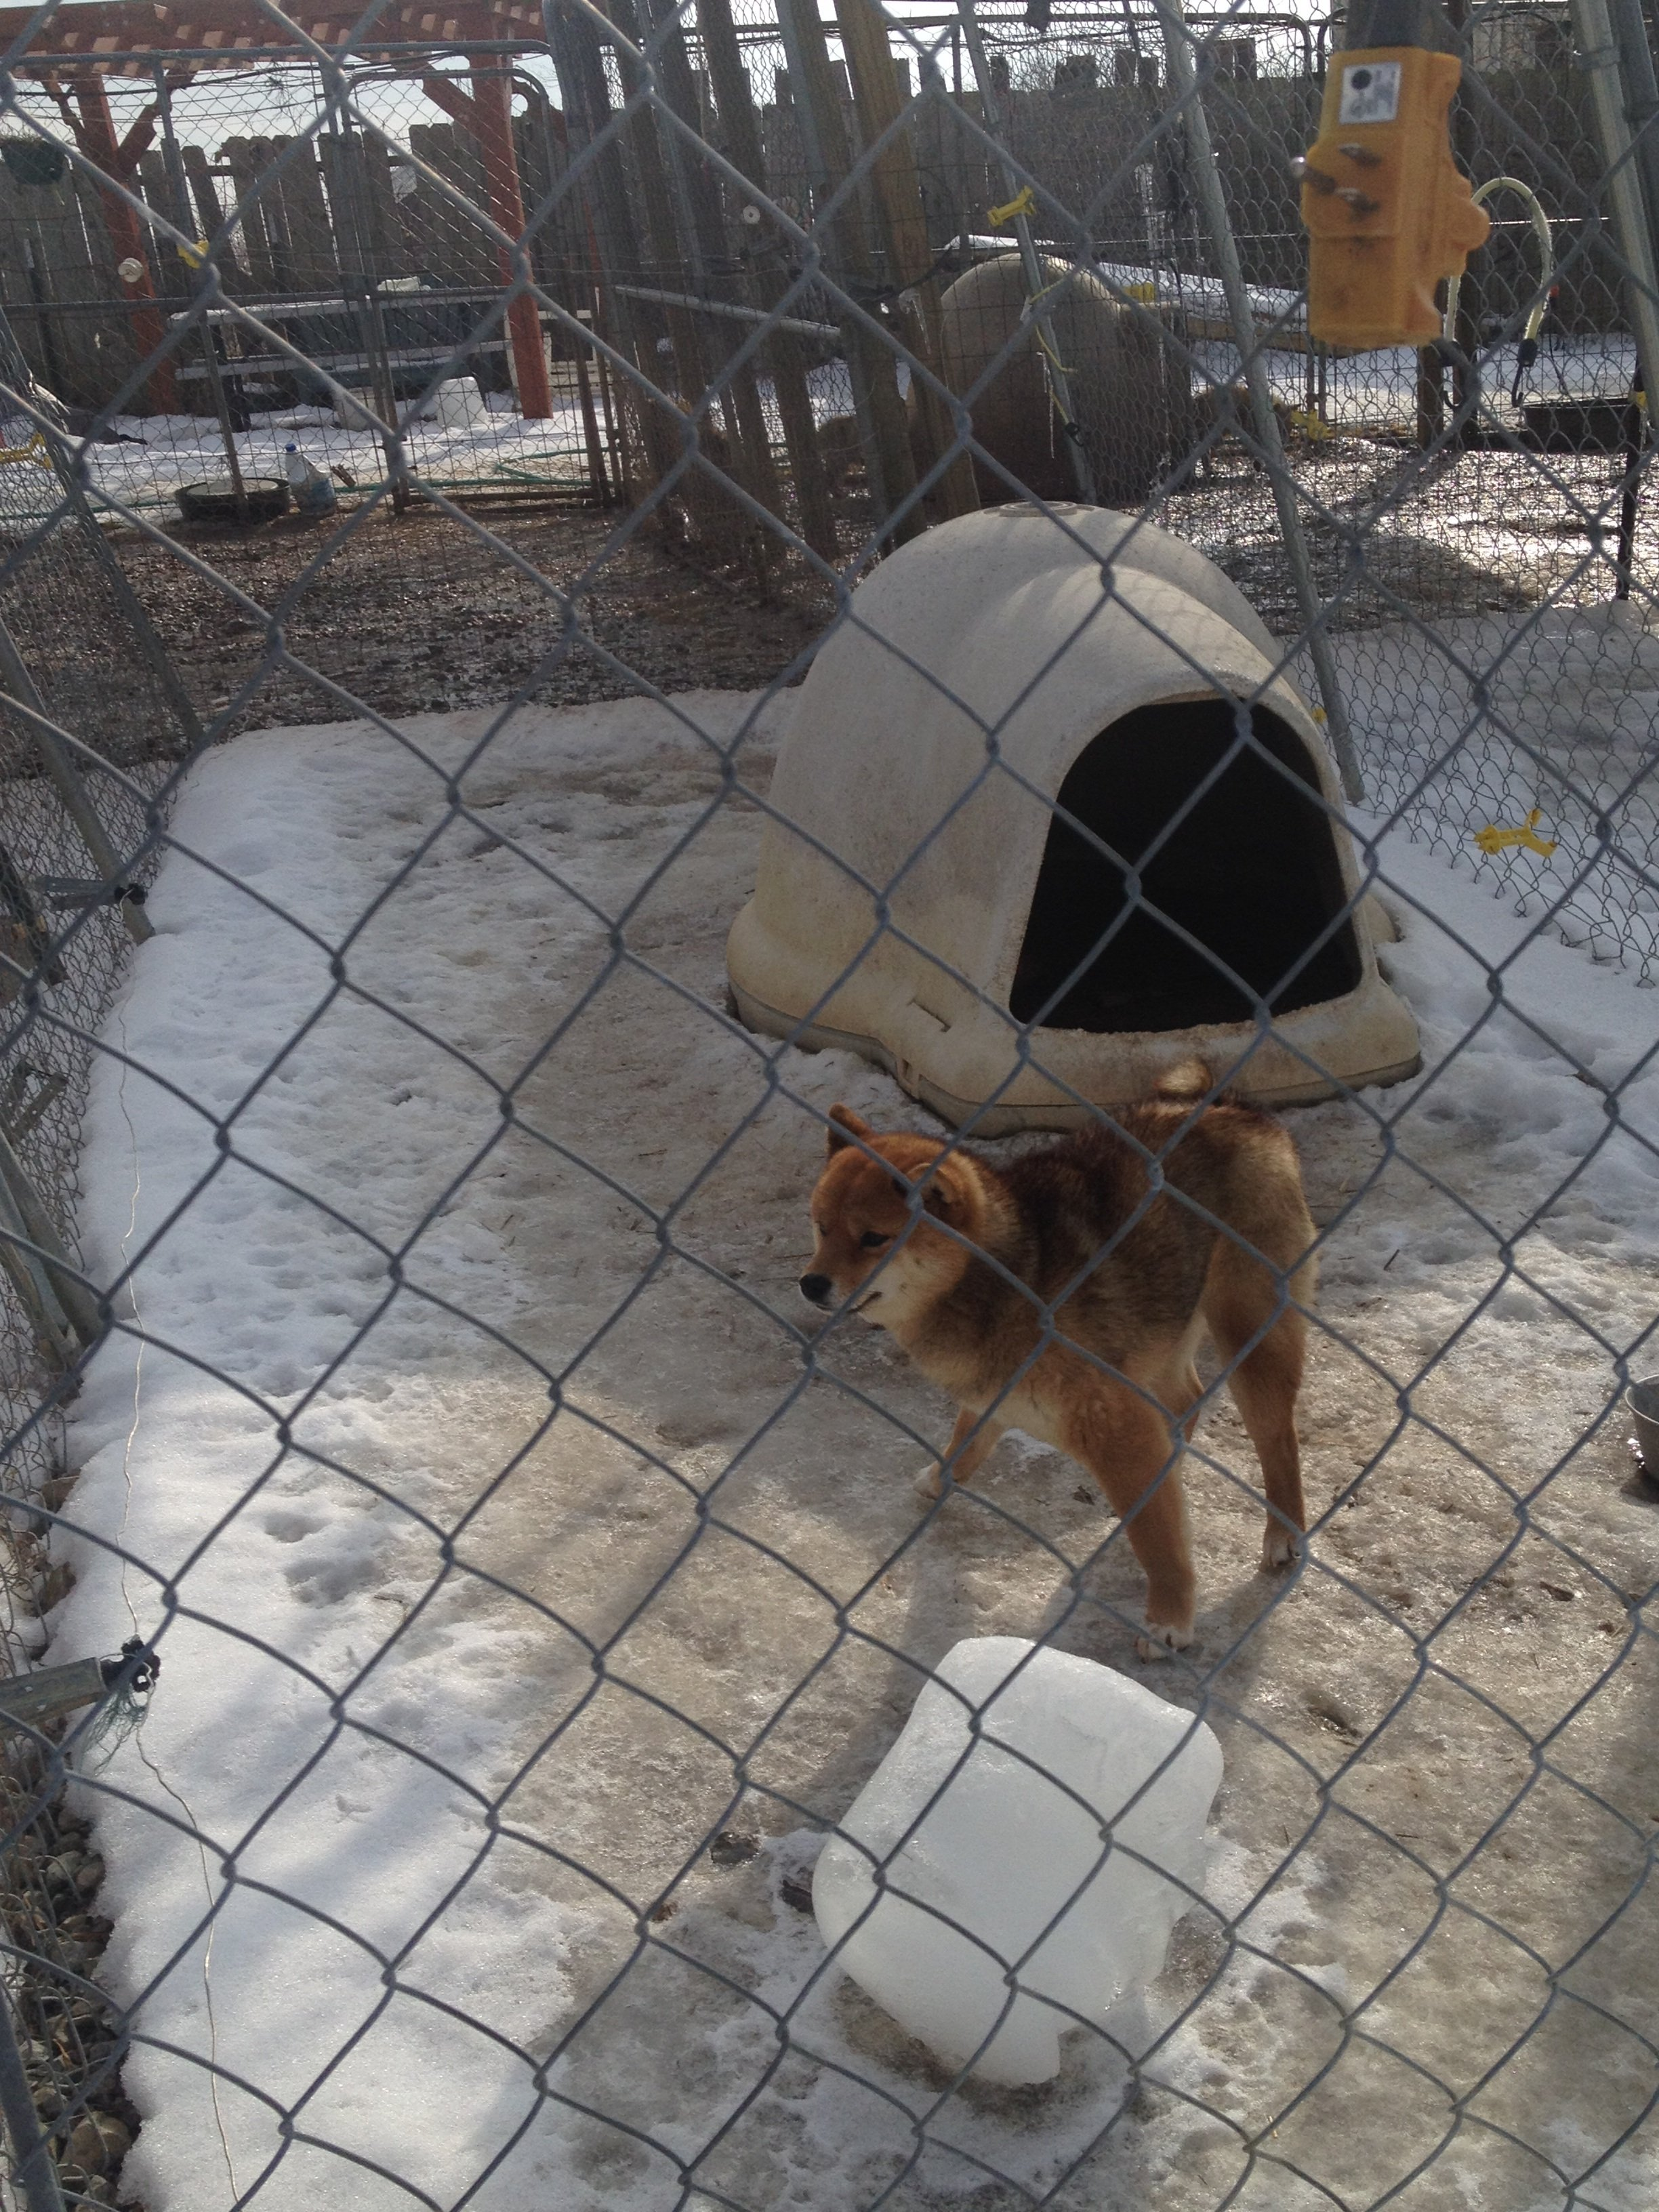 A petition urging the closure of Kev-Lar Kennels says ice covers the ground in kennels